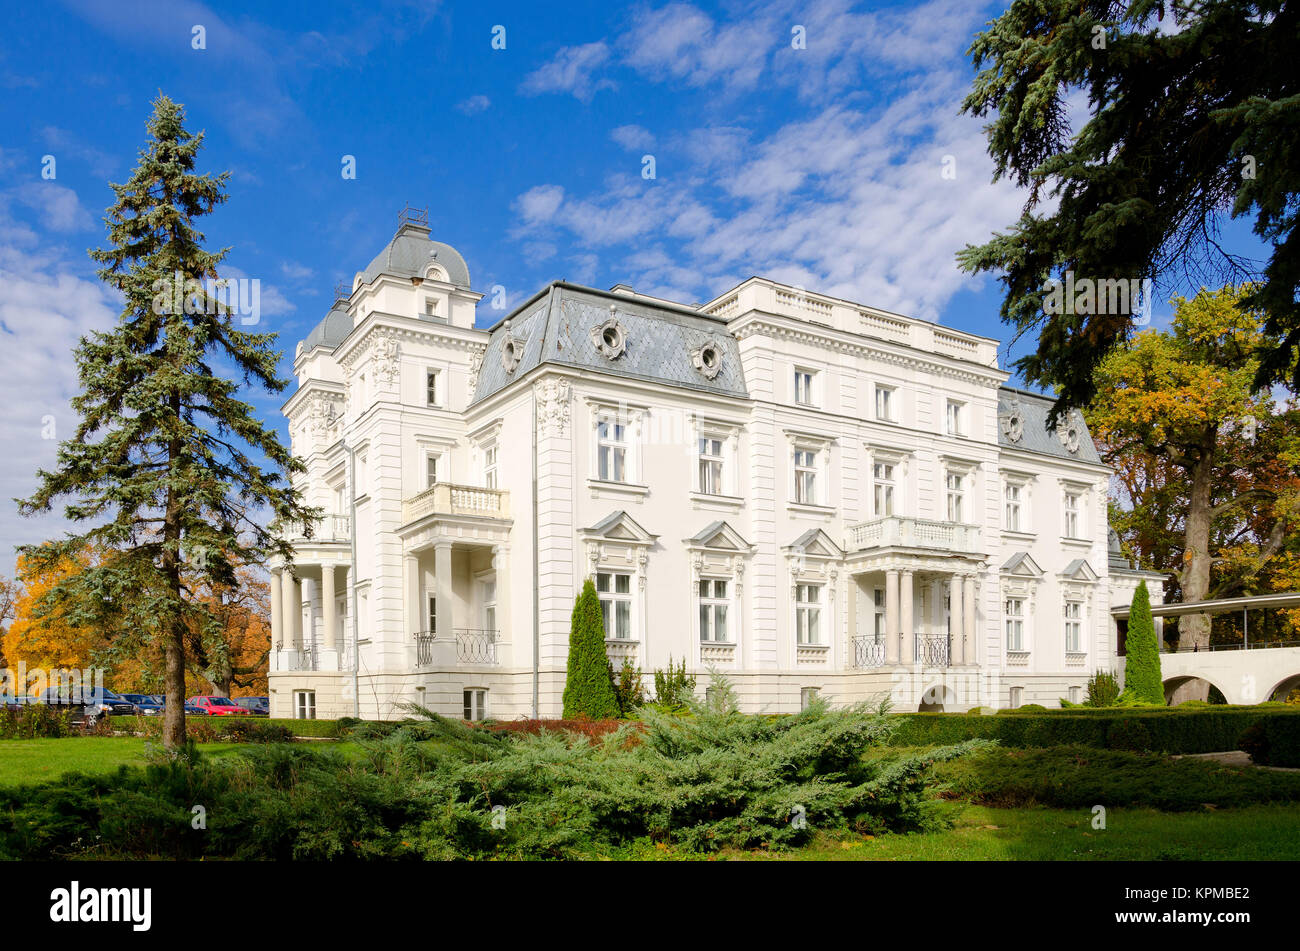 Epstein's palace in Teresin (built 1890-1900) nearby Sochaczew. Masovian voivodship. Poland - Stock Image